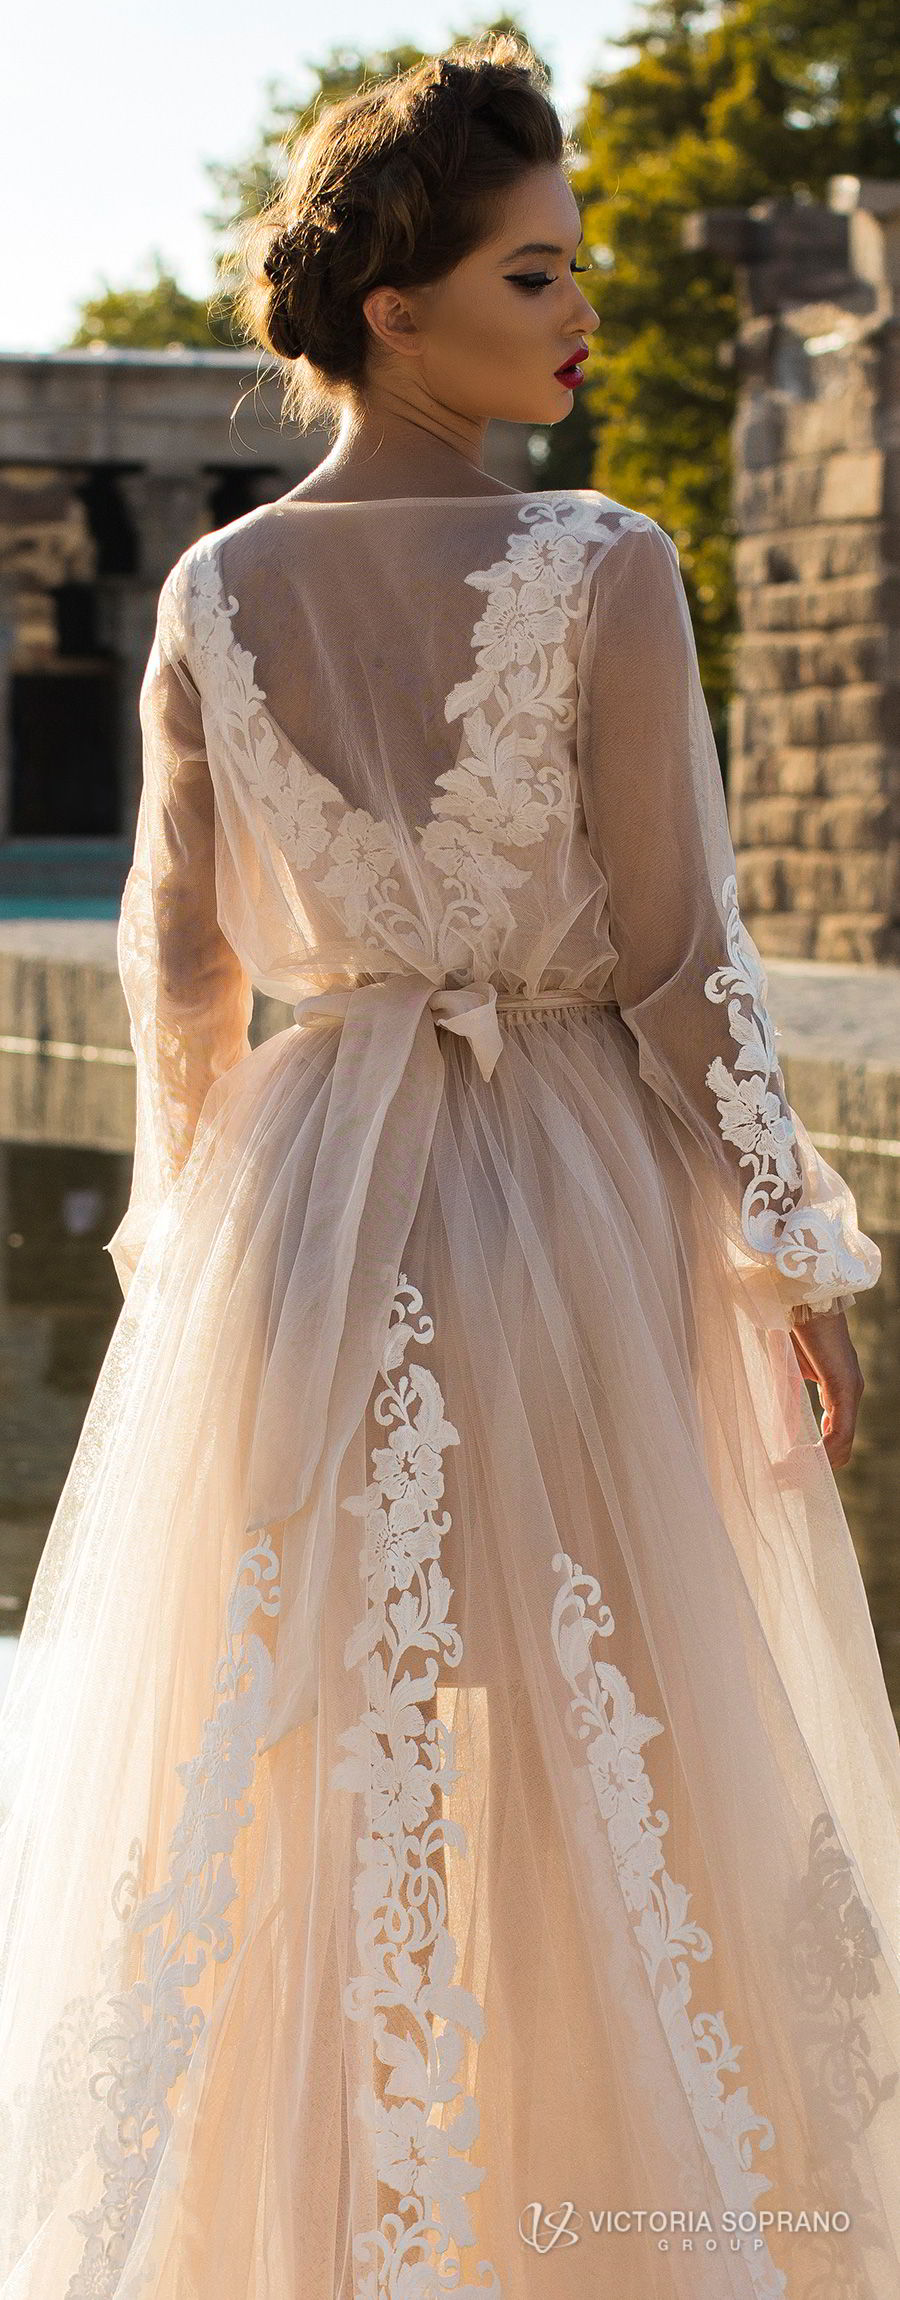 victoria soprano 2018 bridal long sleeves illuson bateau v neck light embellishment romantic blush color a line wedding dress sheer back sweep train (leila) zbv